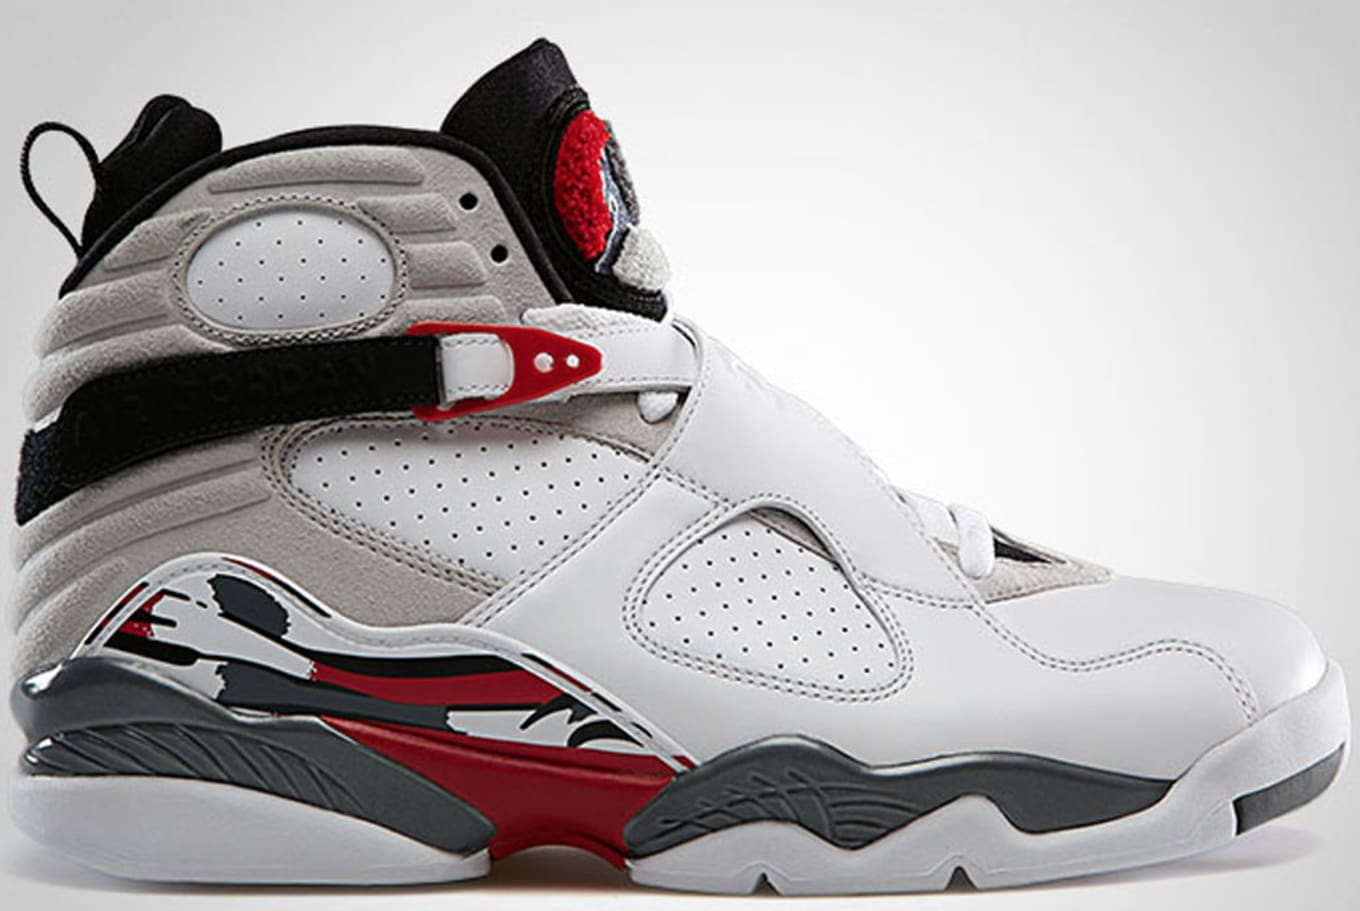 b3576eae583b97 Air Jordan 8 Retro